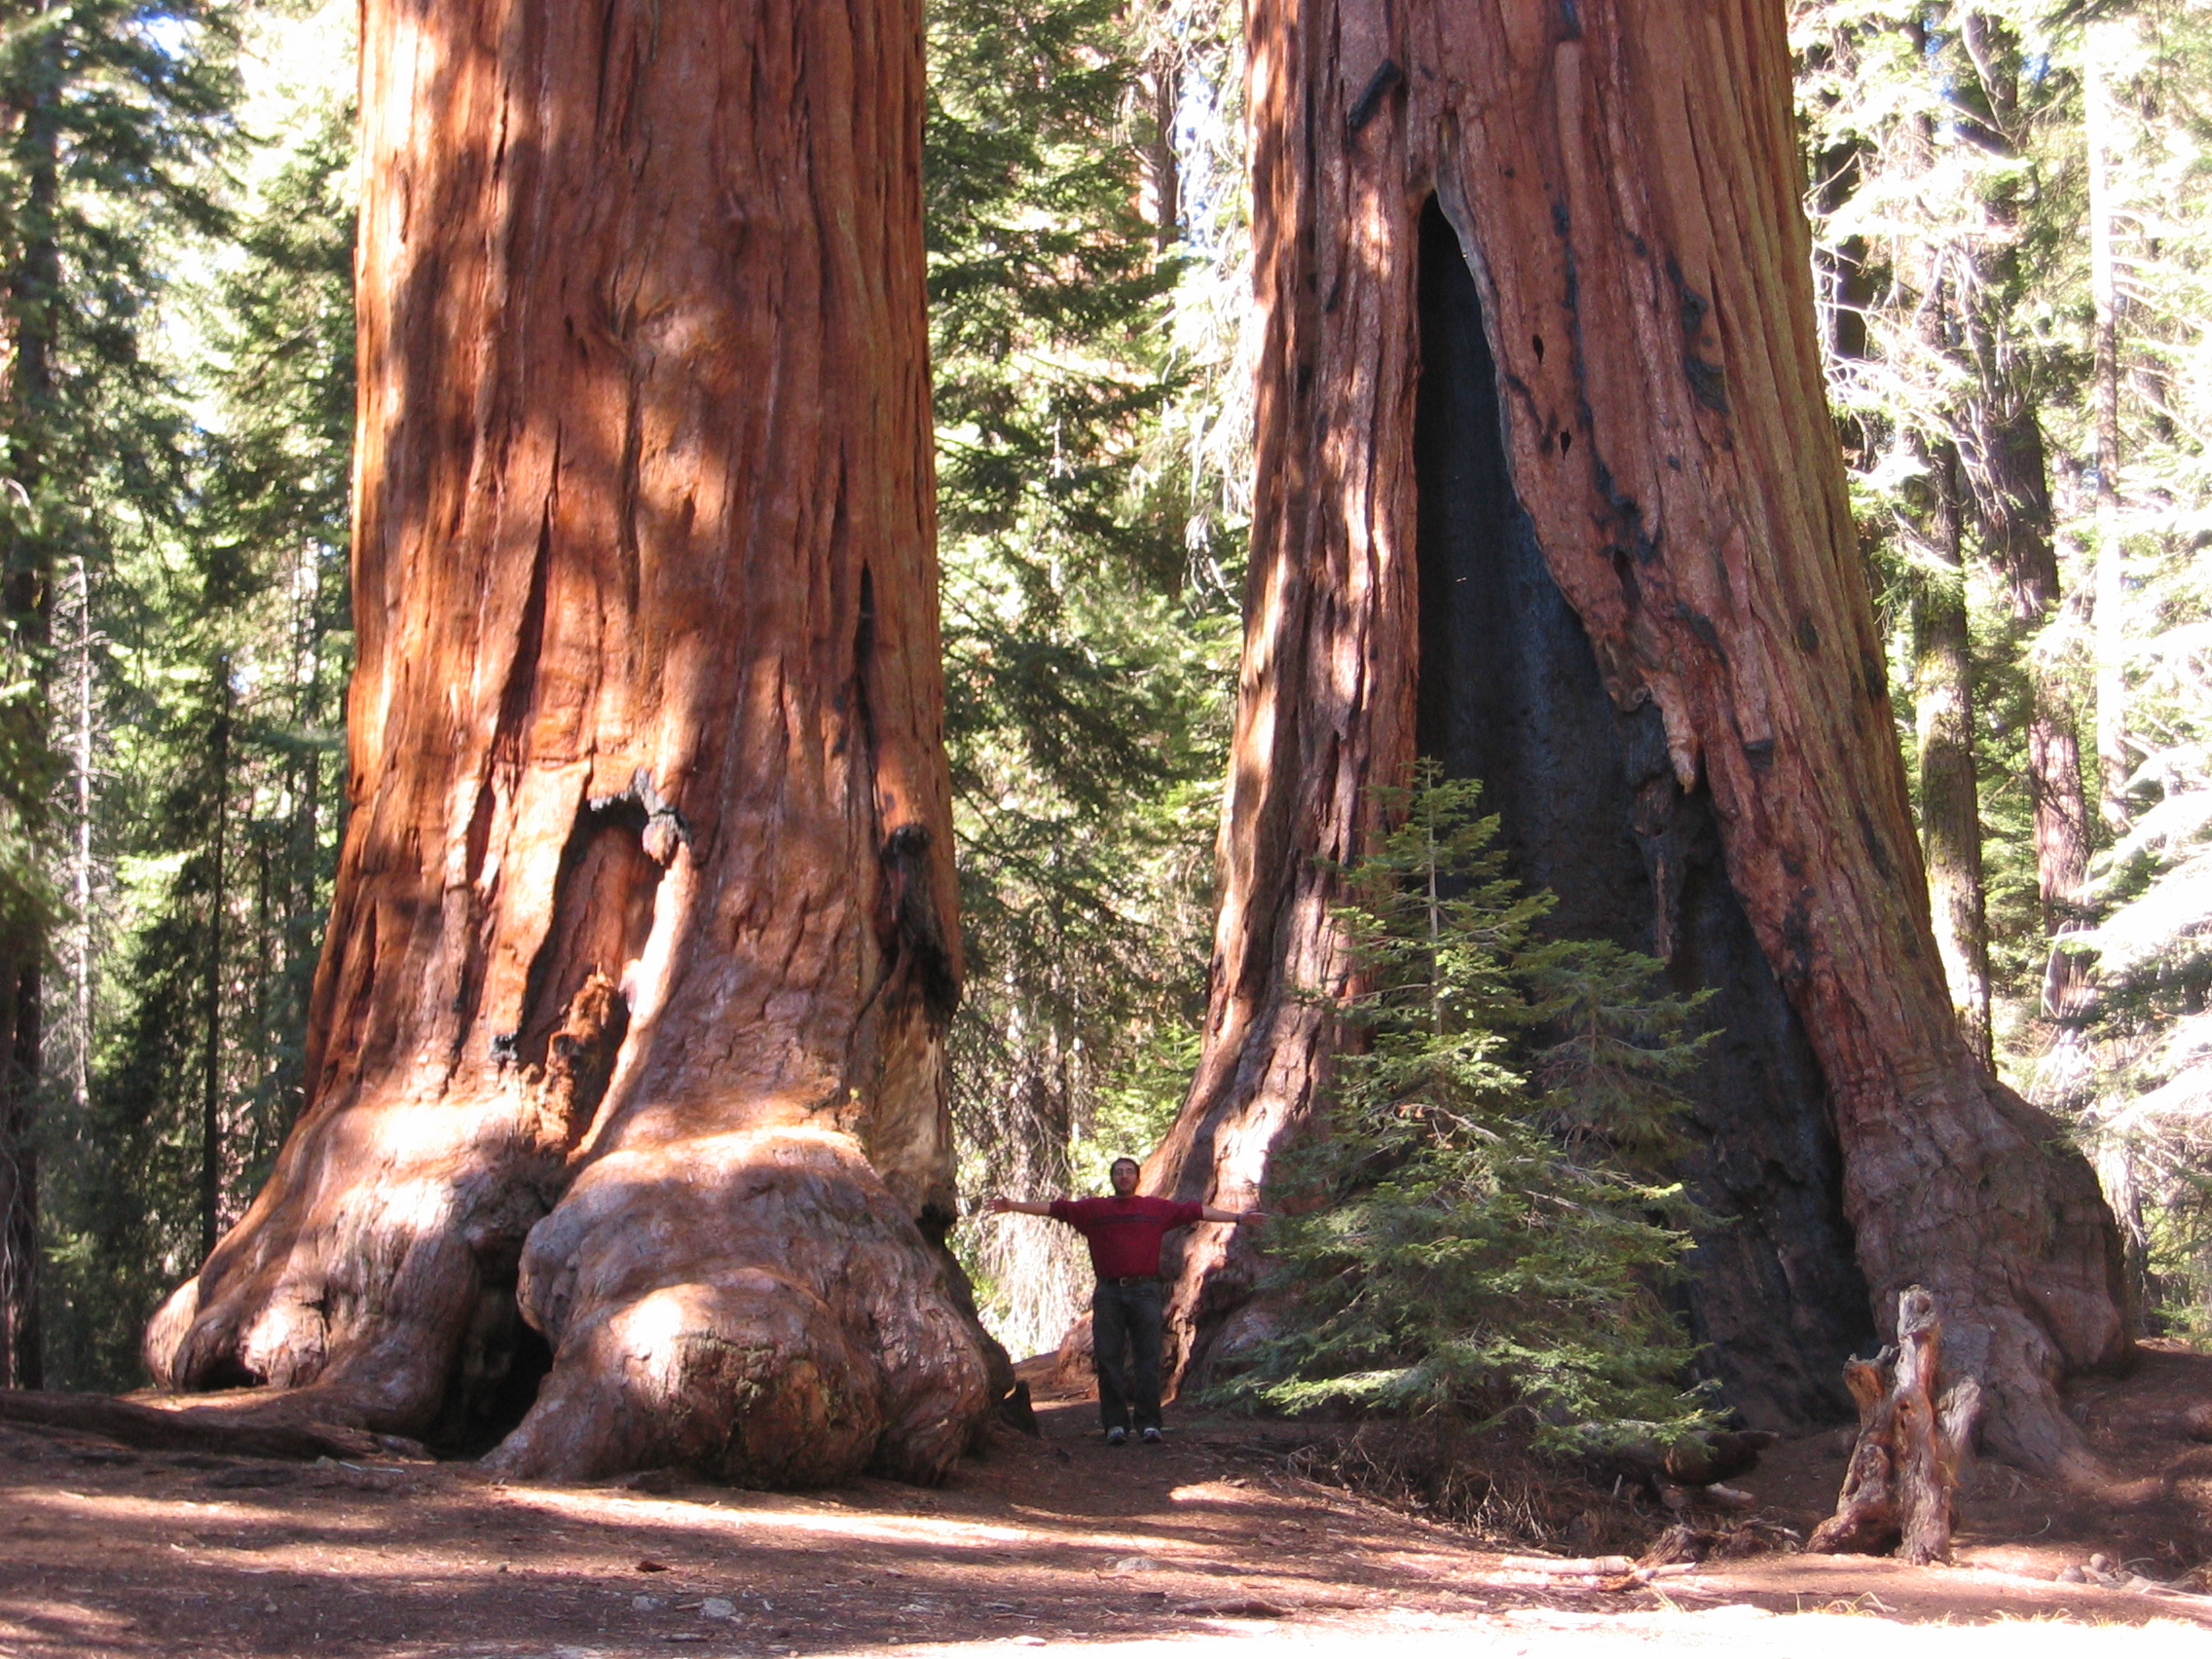 Giant Sequoia Tree at Calaveras Big Trees State Park.